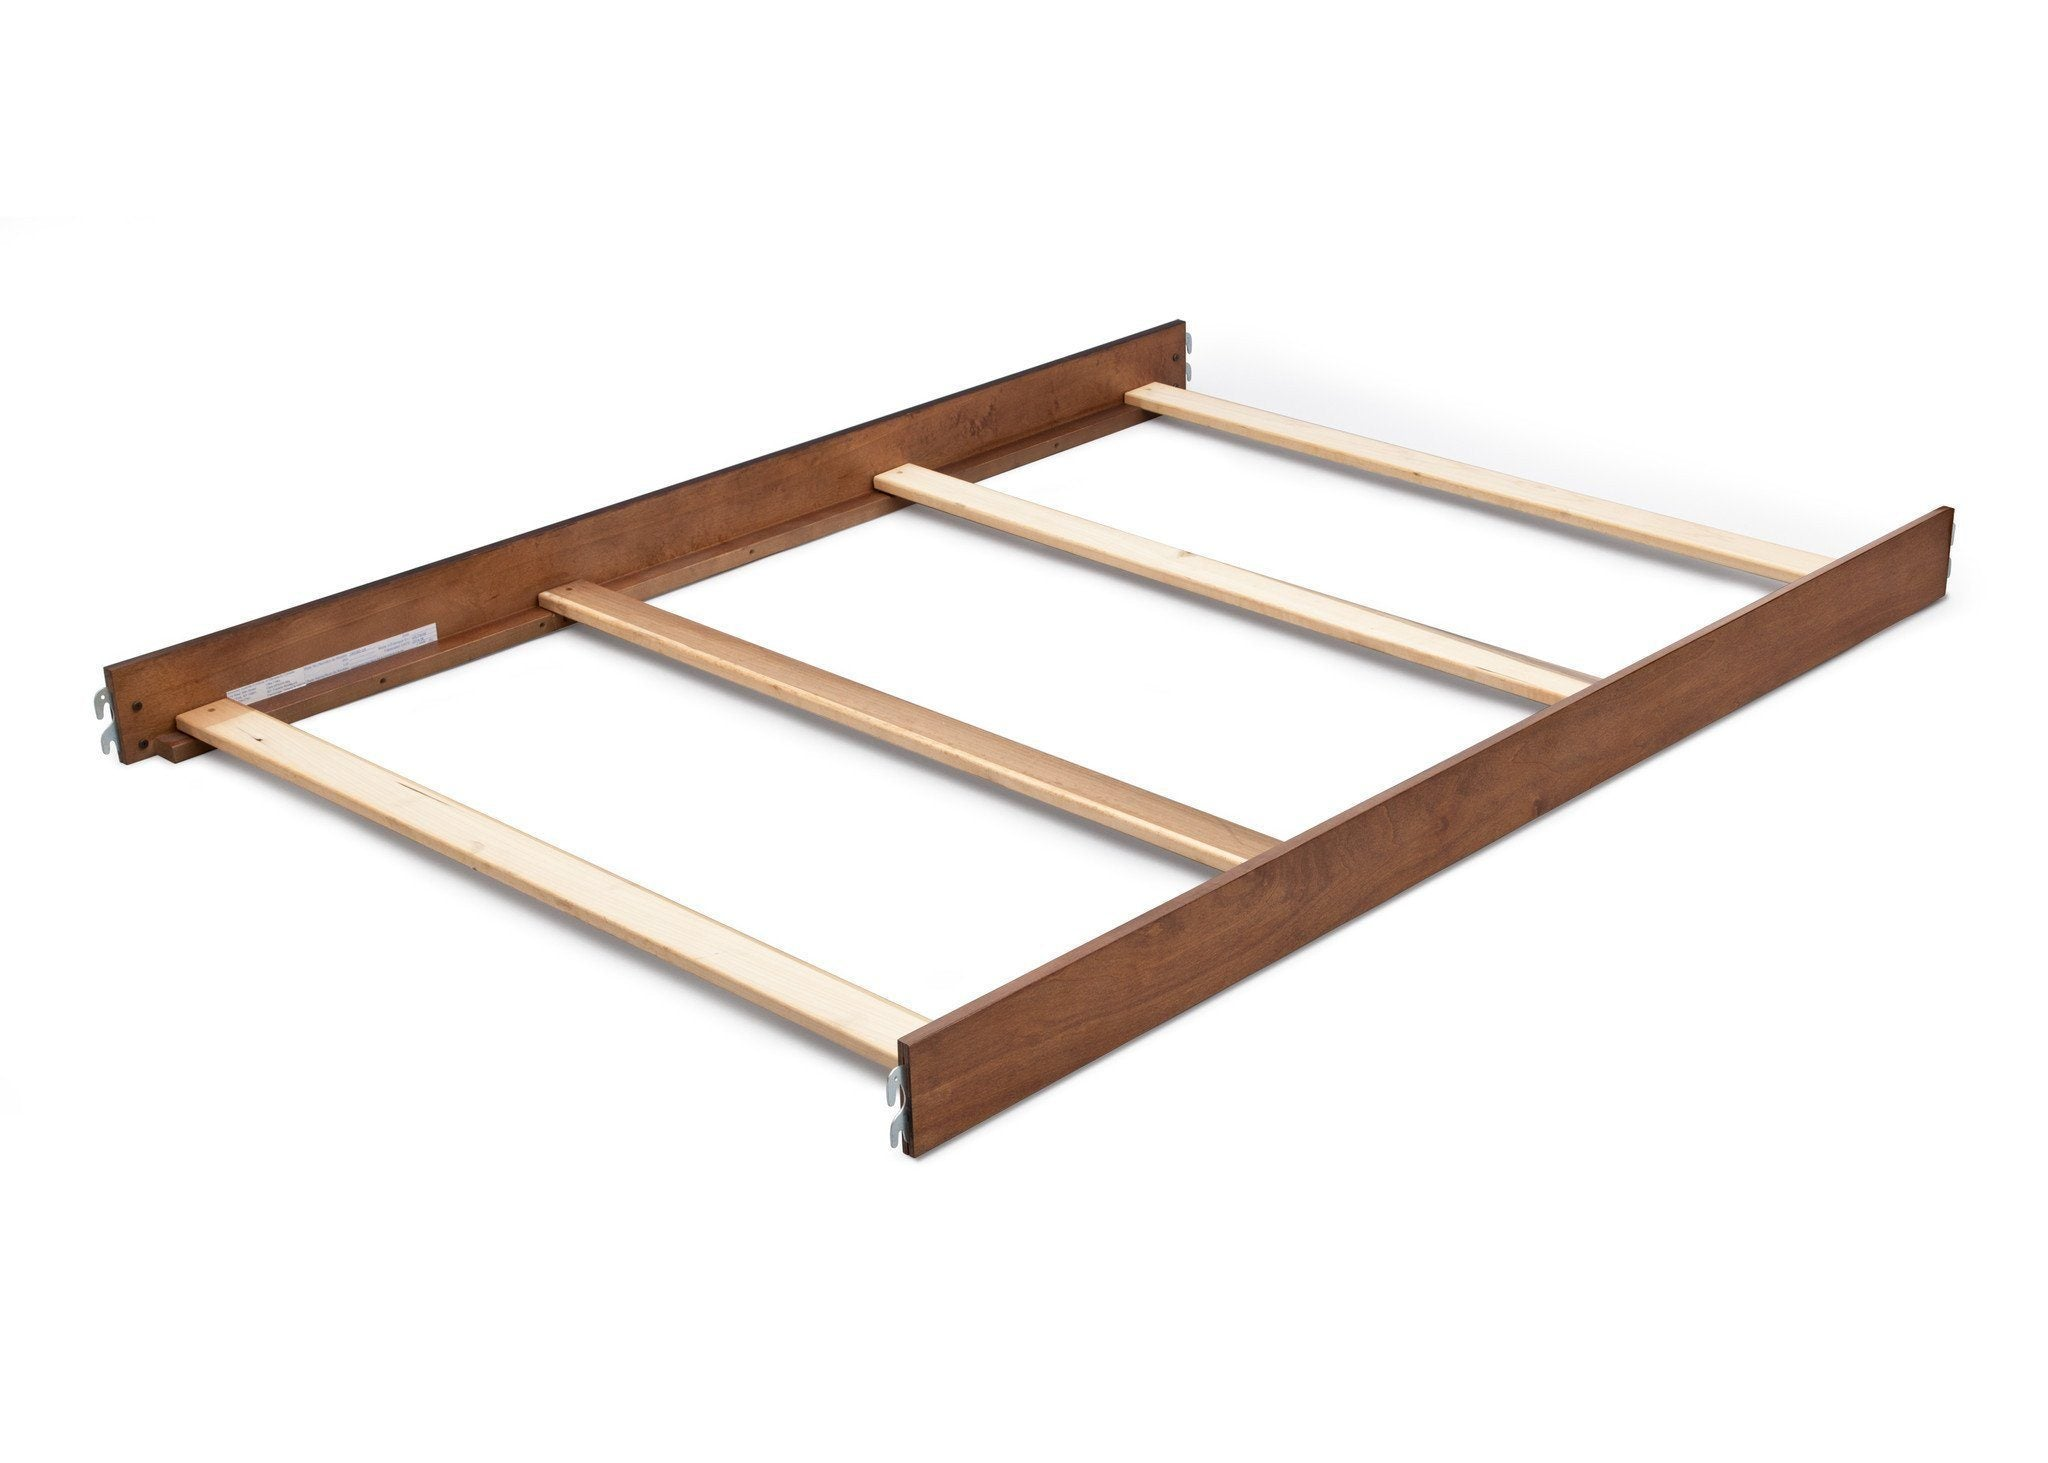 Simmons Kids Chestnut (227) Wood Bed Rails (180080) gg1gg